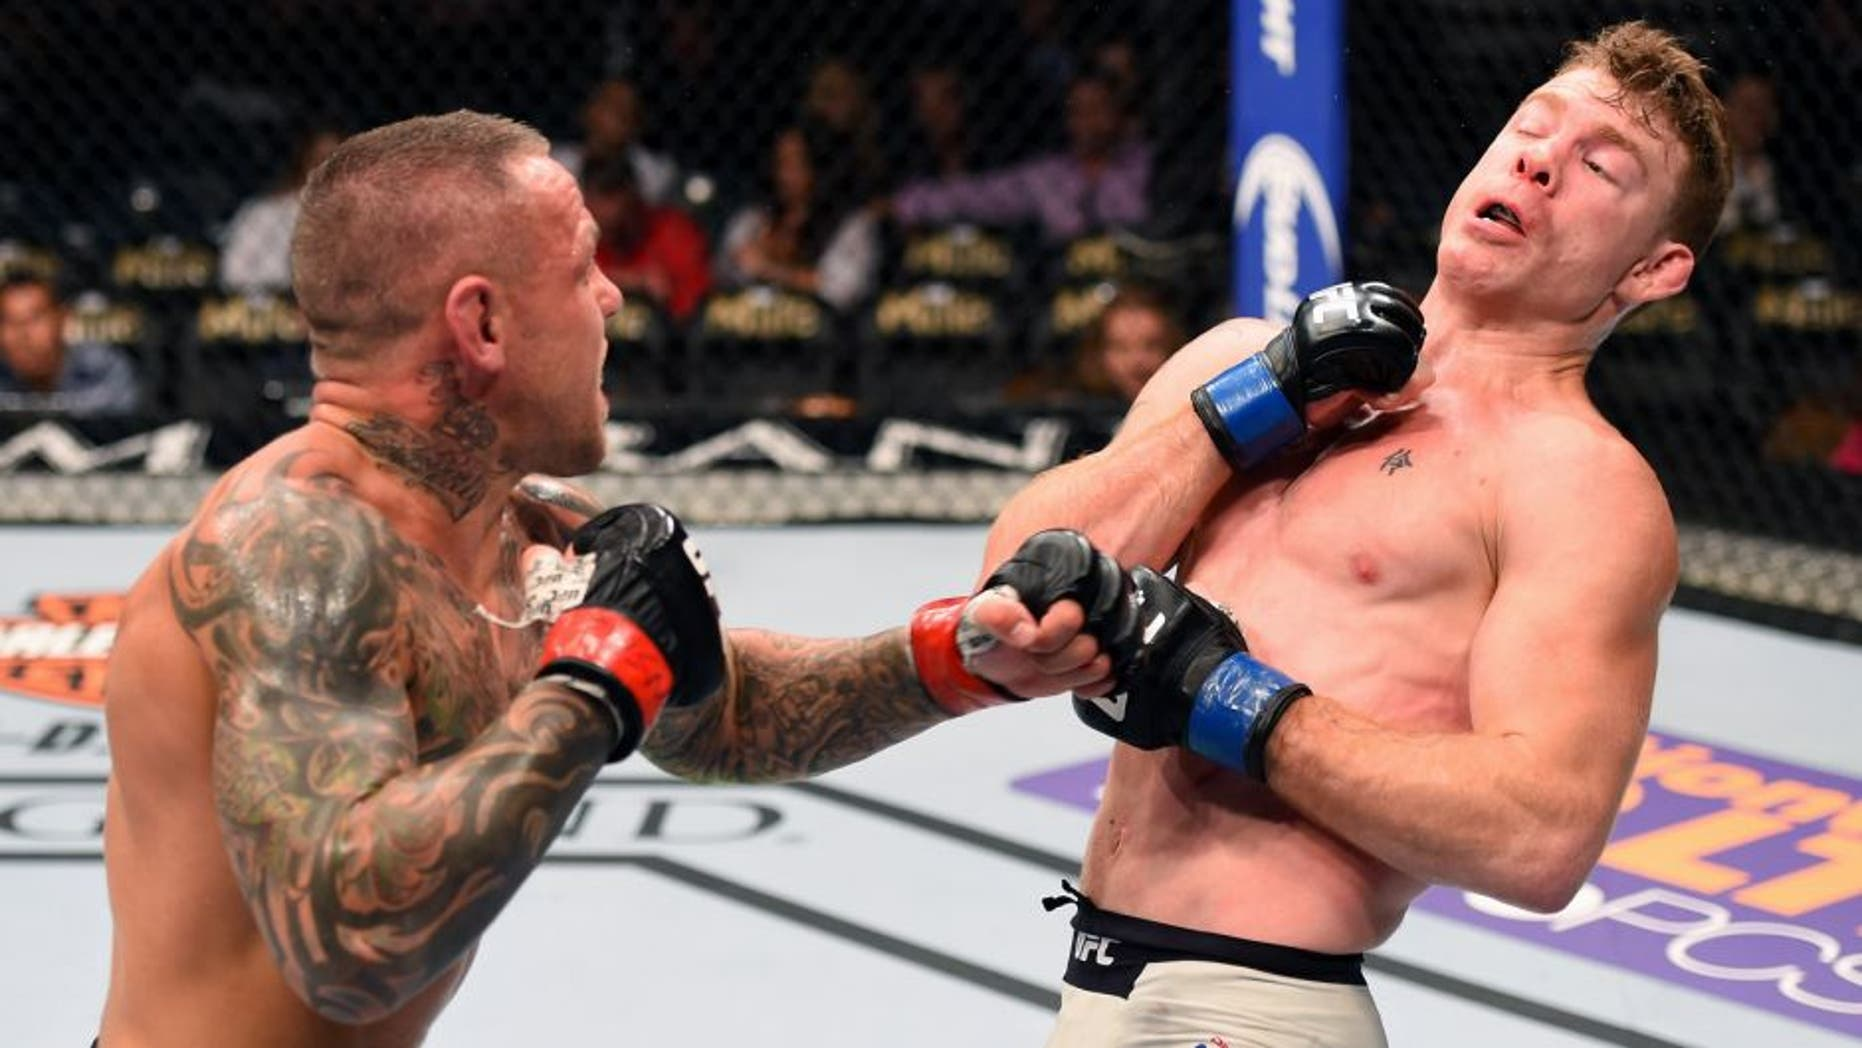 LAS VEGAS, NV - SEPTEMBER 05: (L-R) Ross Pearson punches Paul Felder in their lightweight bout during the UFC 191 event inside MGM Grand Garden Arena on September 5, 2015 in Las Vegas, Nevada. (Photo by Josh Hedges/Zuffa LLC/Zuffa LLC via Getty Images)